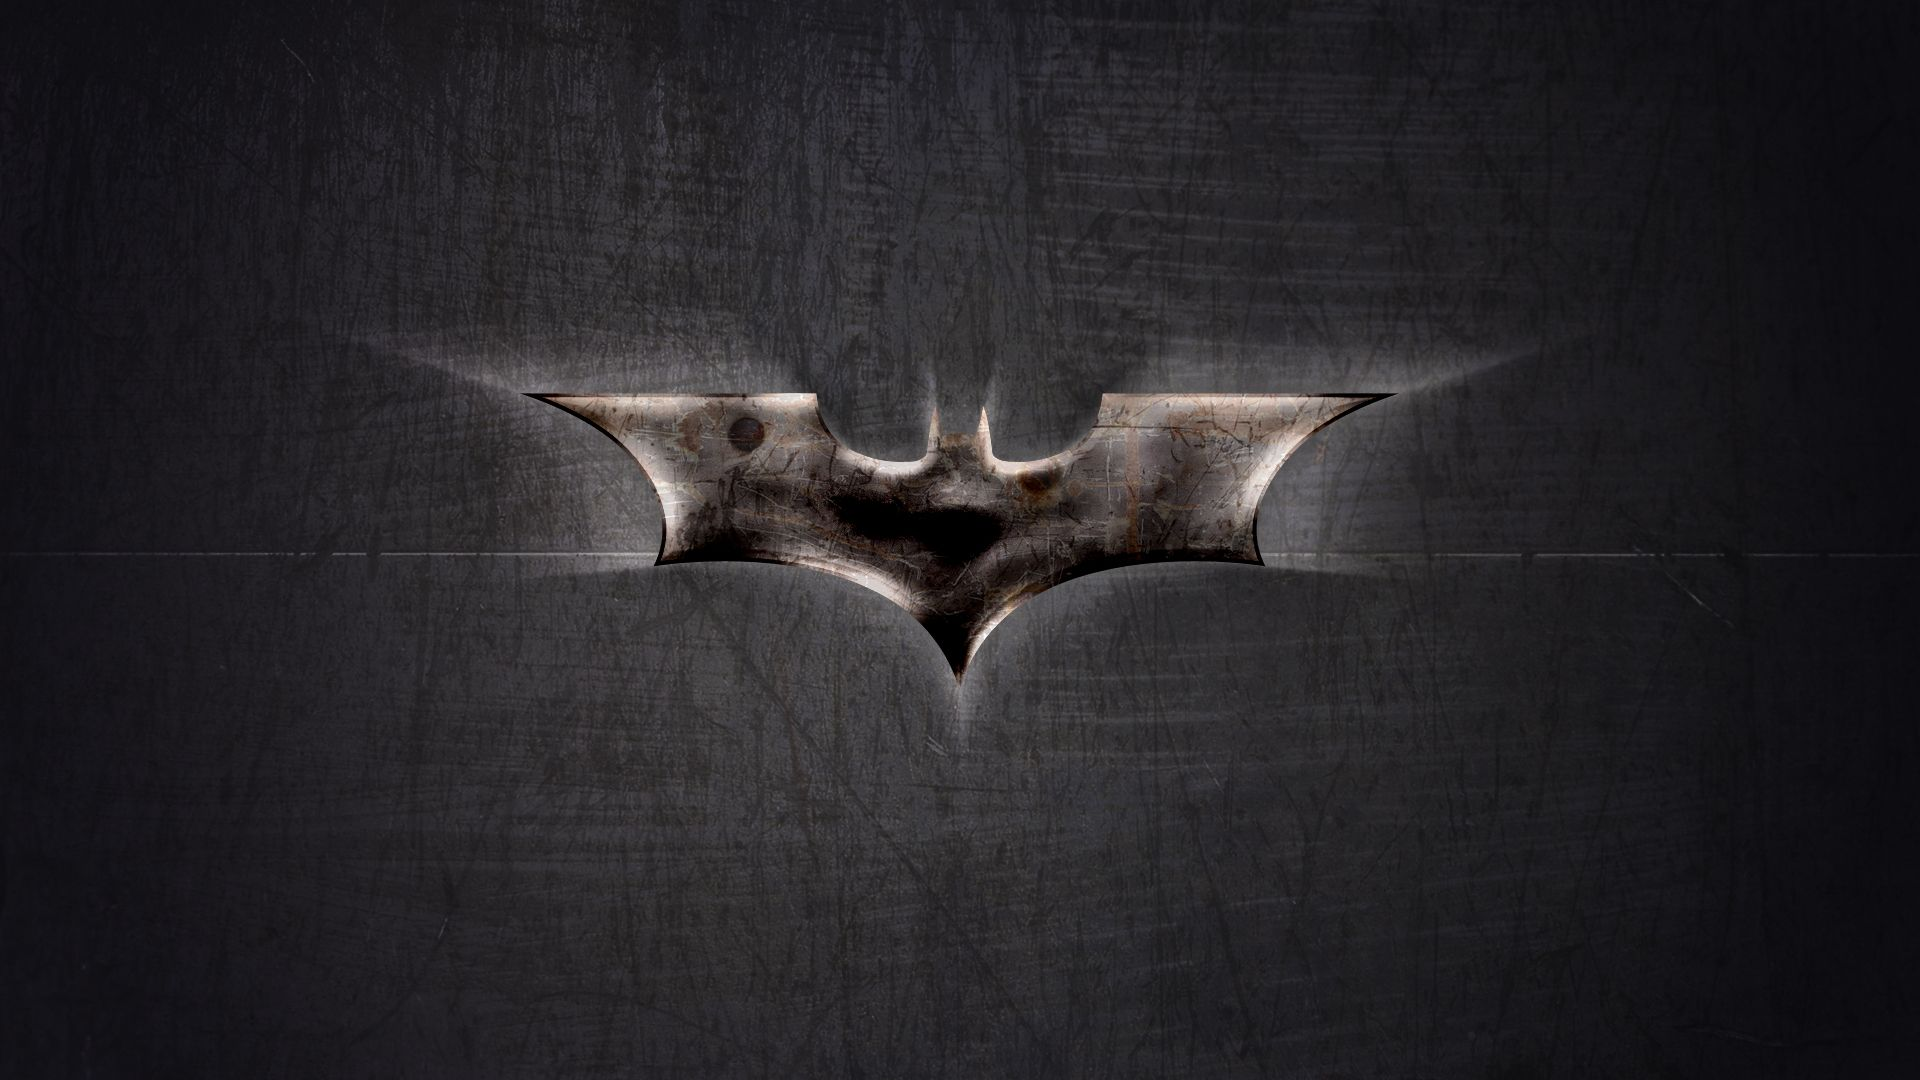 Excellent batman logo wallpapers freshwallpapers hd wallpapers excellent batman logo wallpapers freshwallpapers voltagebd Image collections